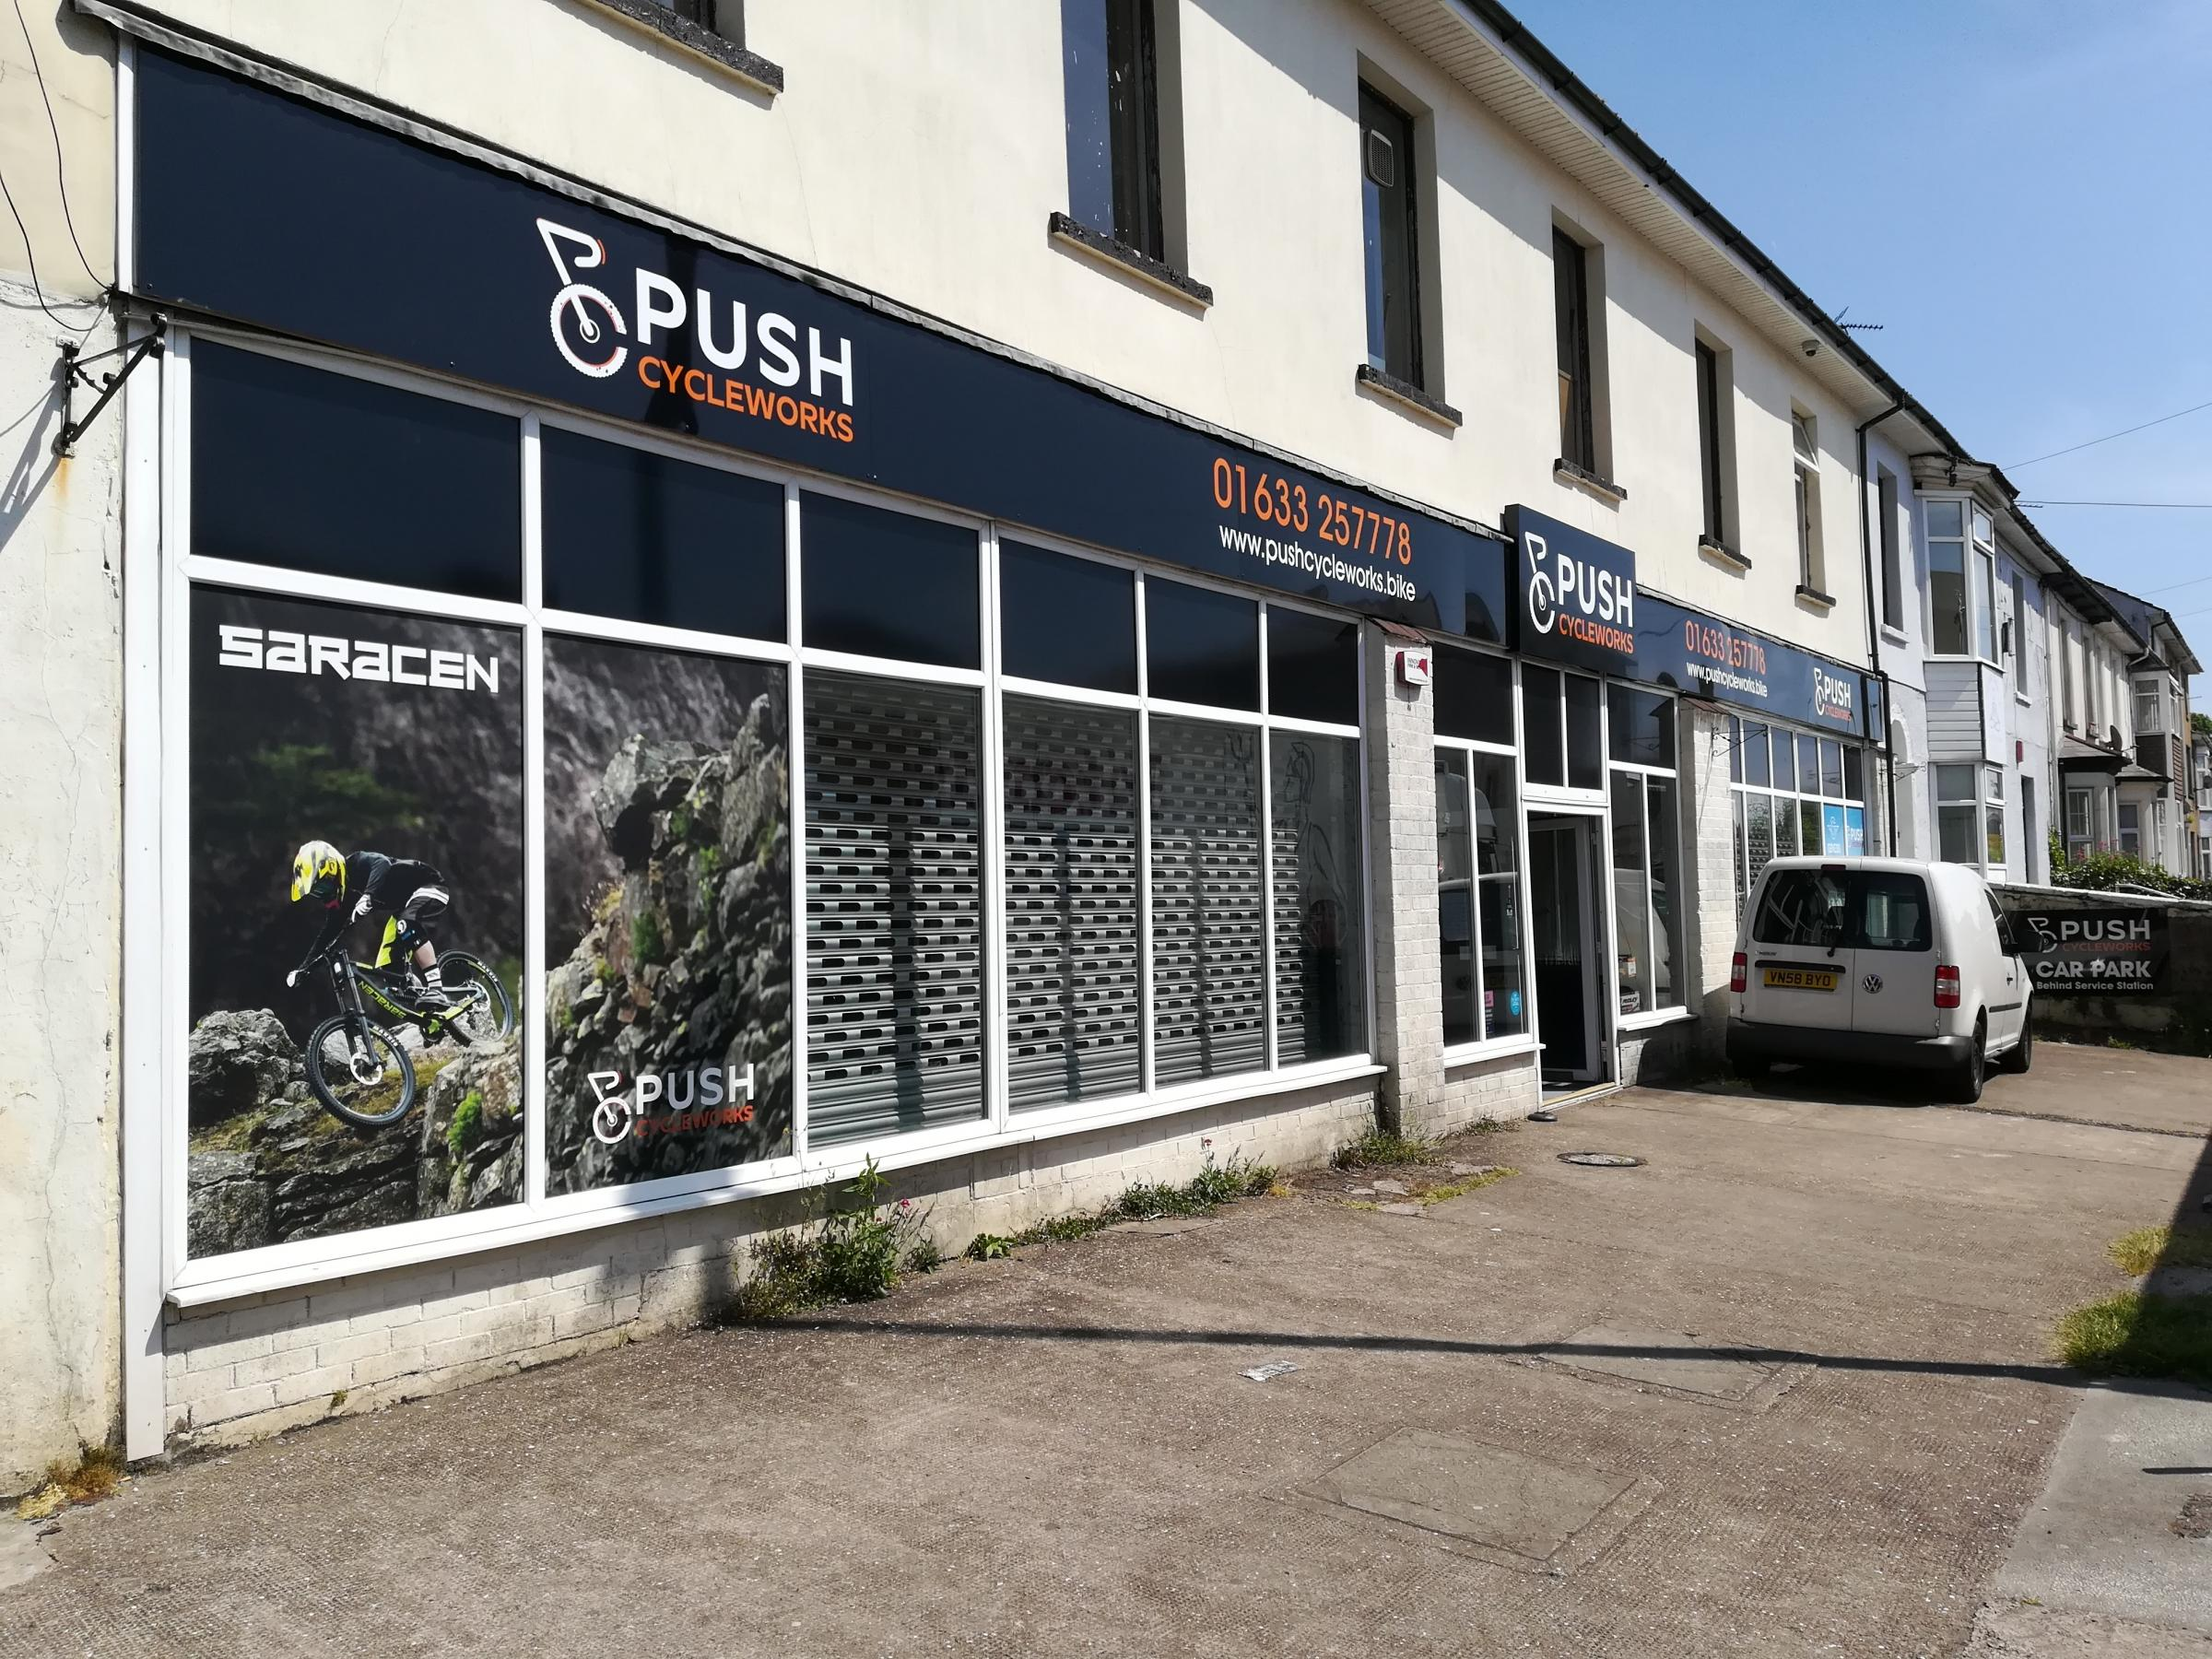 Push Cycle Works on Stow Hill